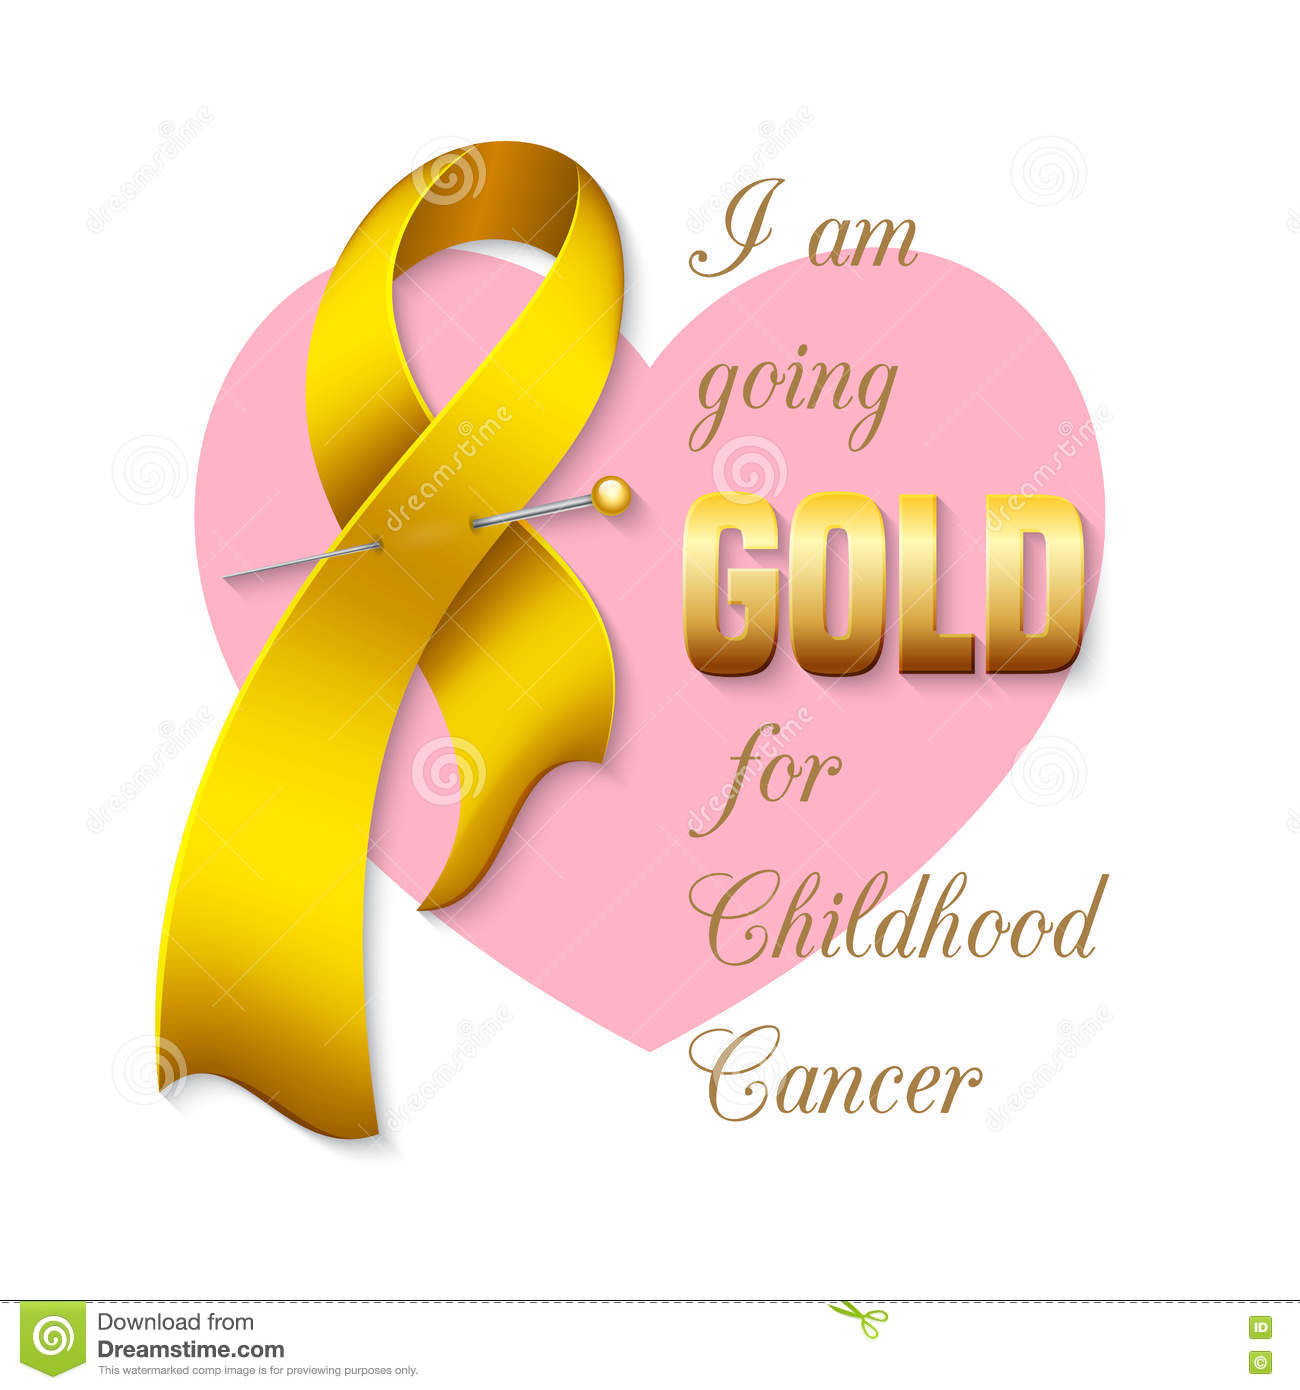 Childhood cancer ribbon stock vector illustration of golden 81834412 download childhood cancer ribbon stock vector illustration of golden 81834412 maxwellsz